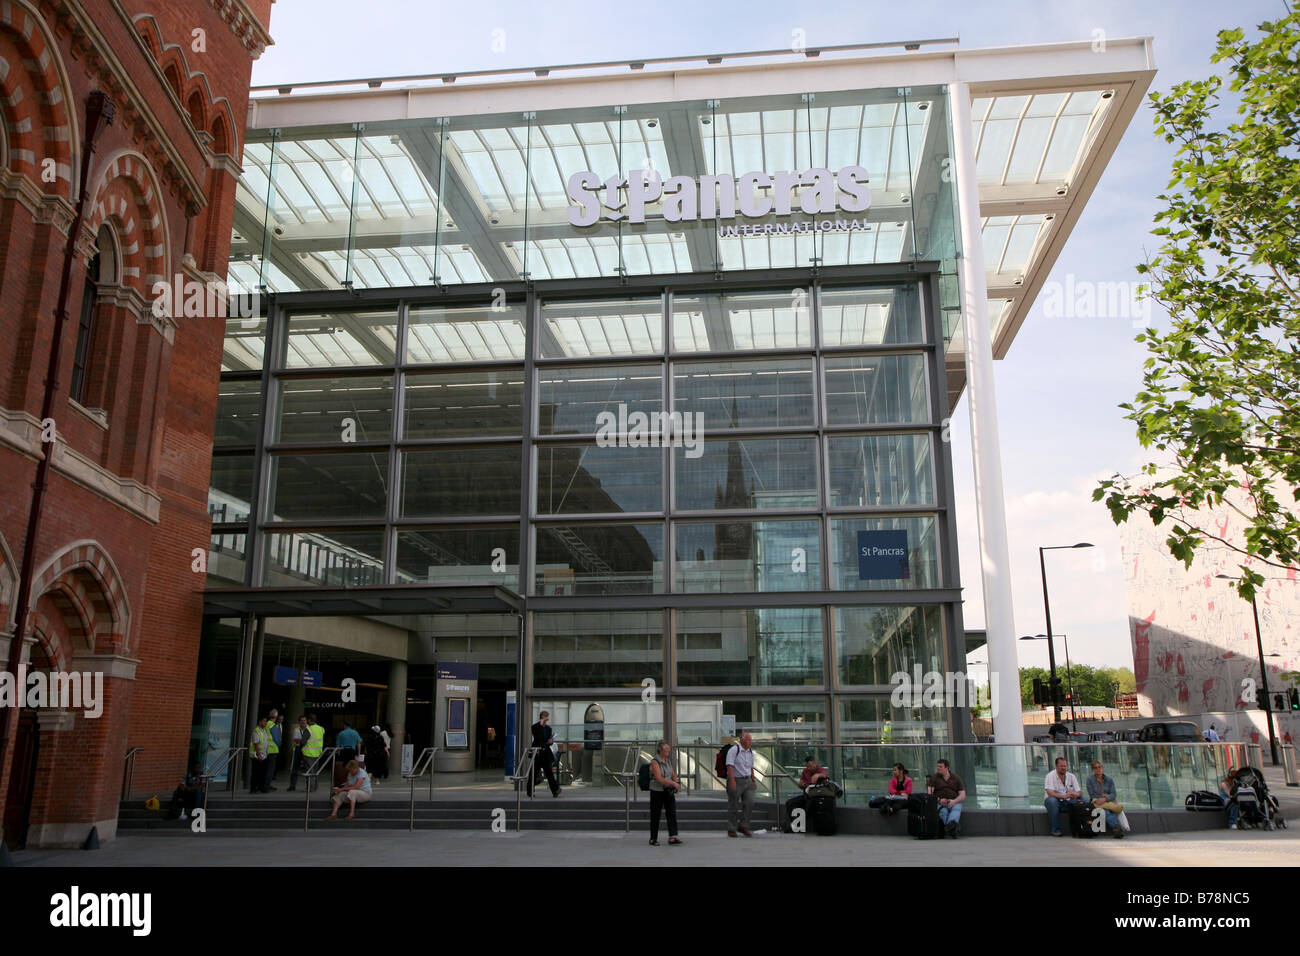 General View GV of St Pancras International train station in London England UK - Stock Image